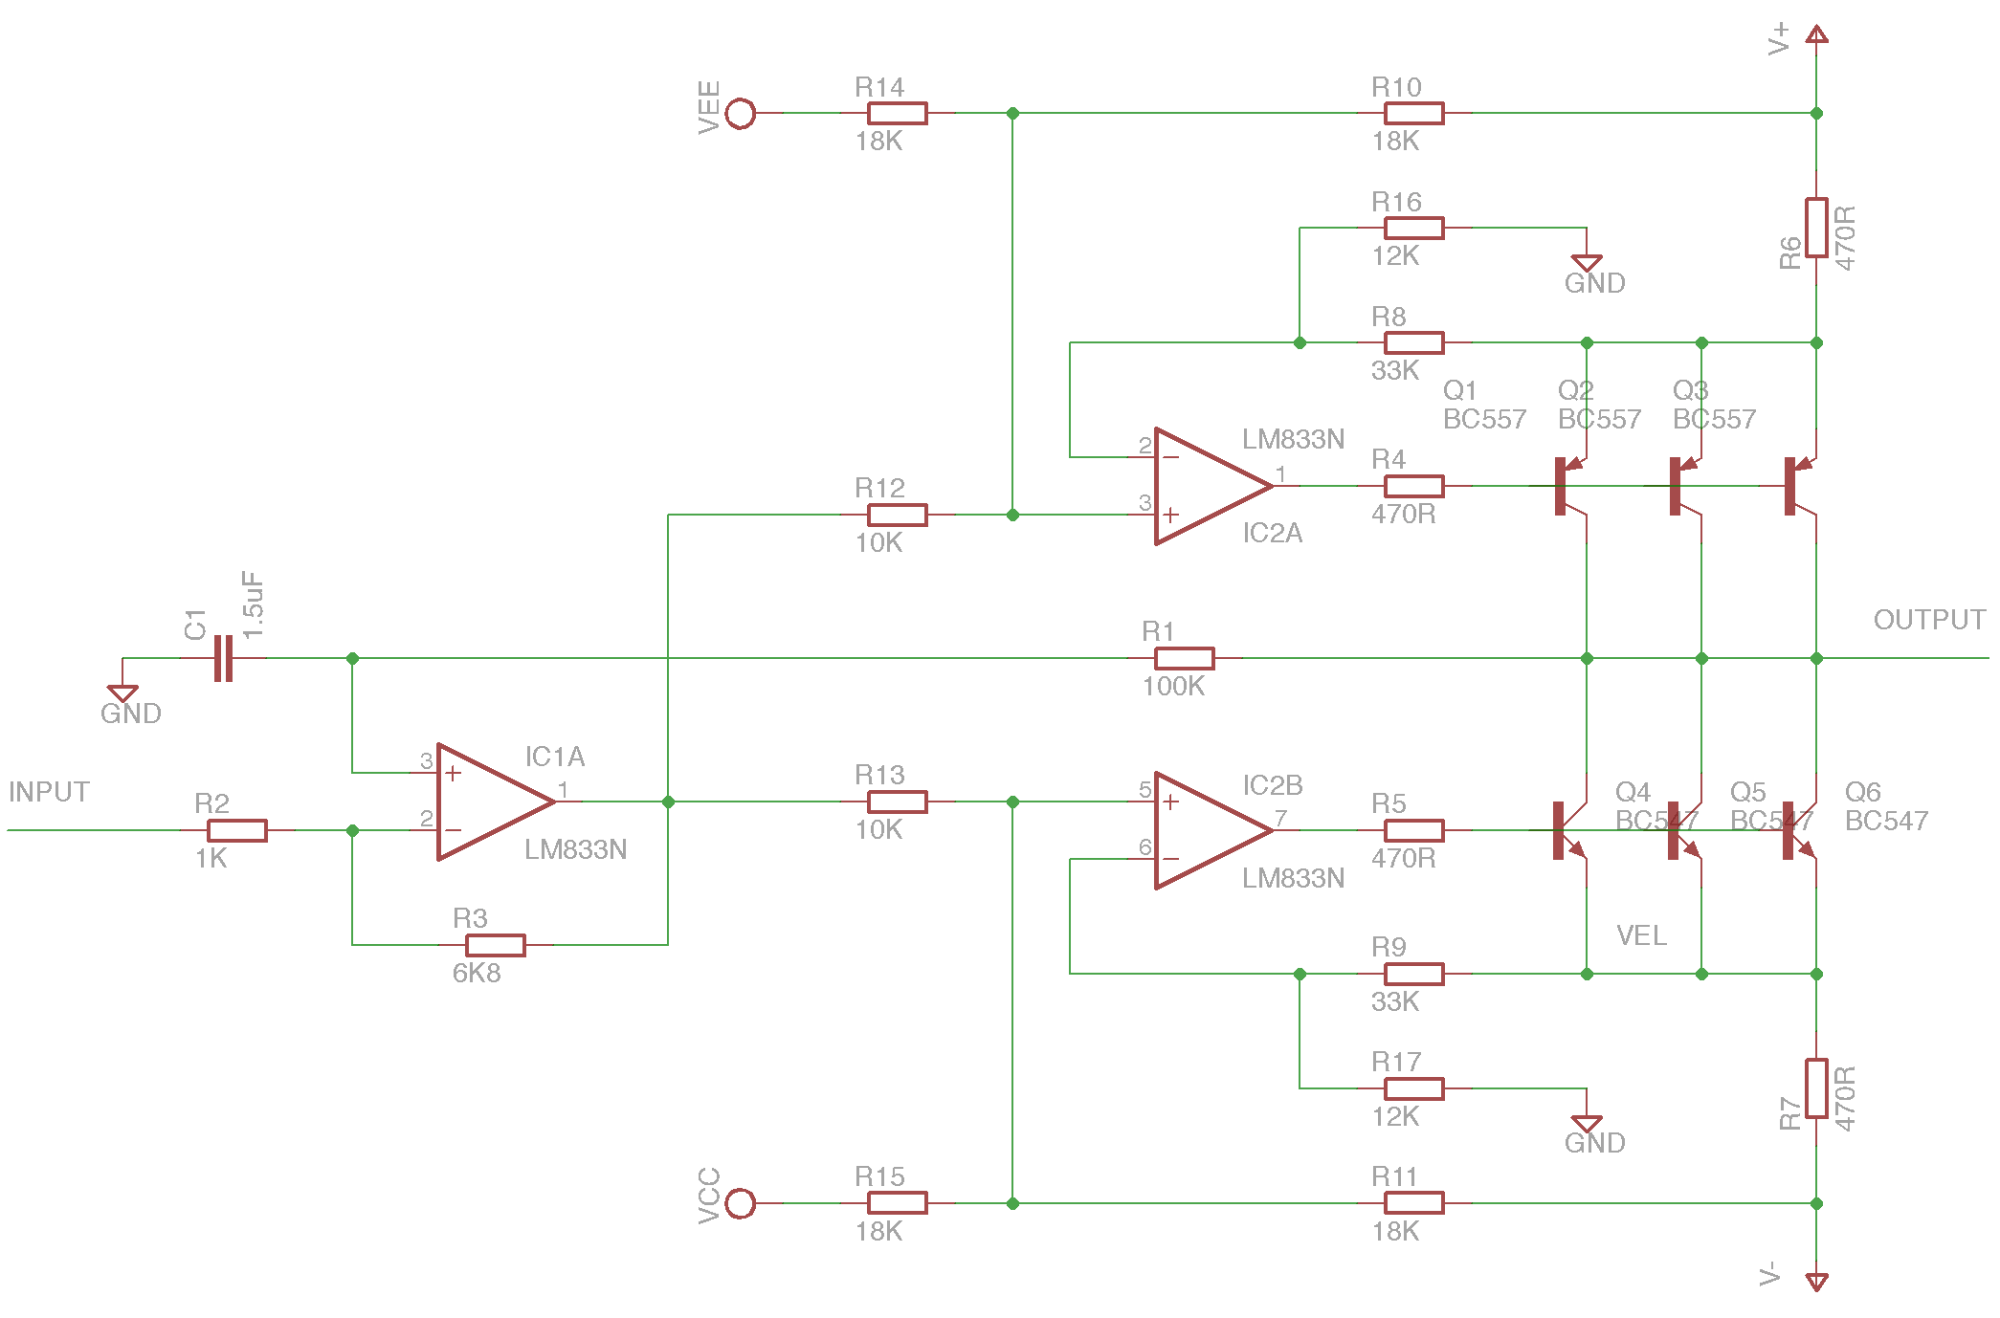 hight resolution of electrical schematic for the main amplifier design